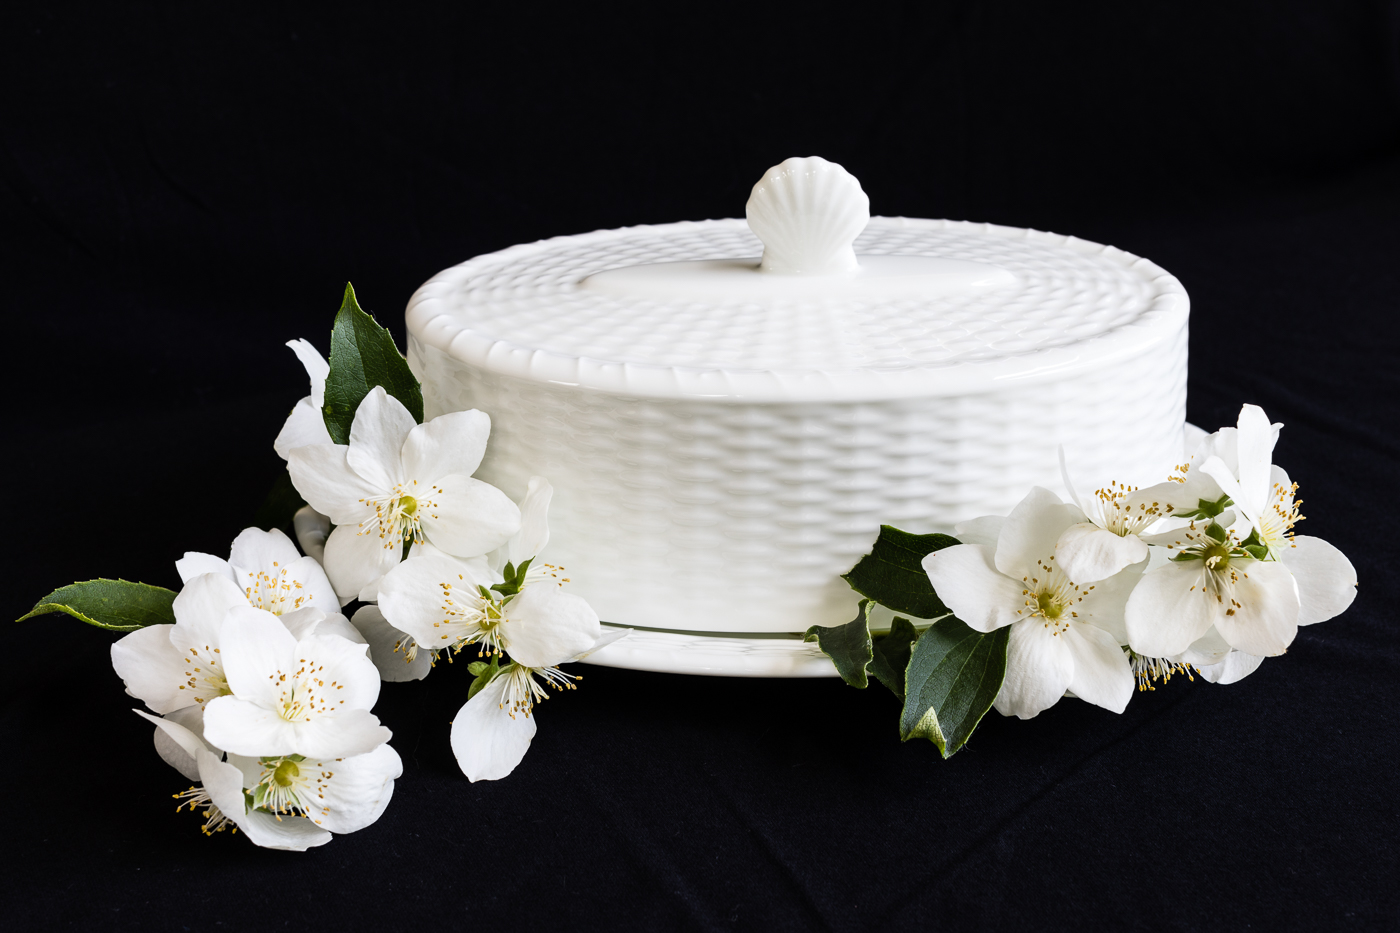 Covered Dish with Orange Blossoms